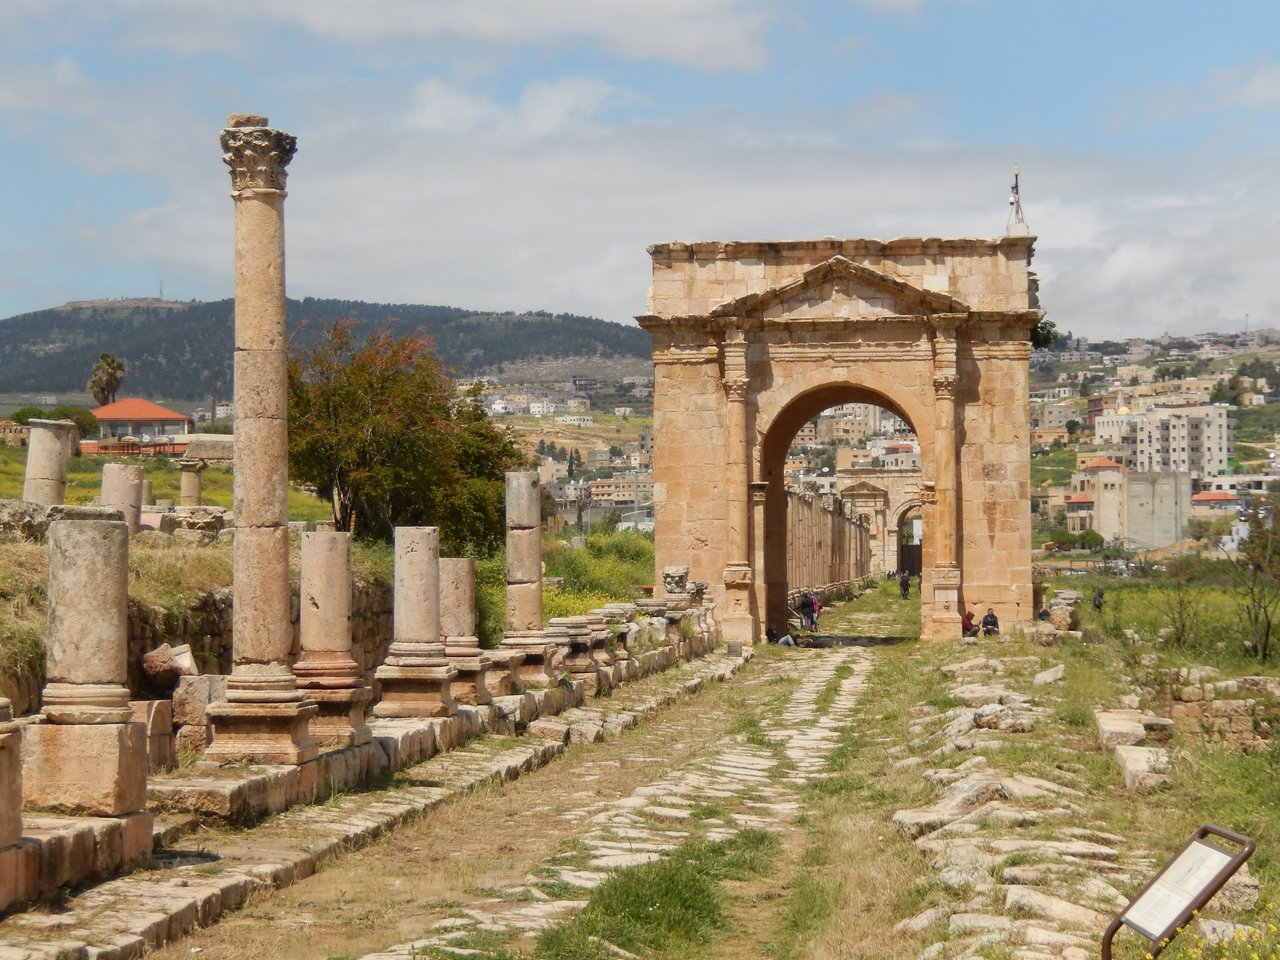 North Gate, Jerash | Photo taken by Linley V